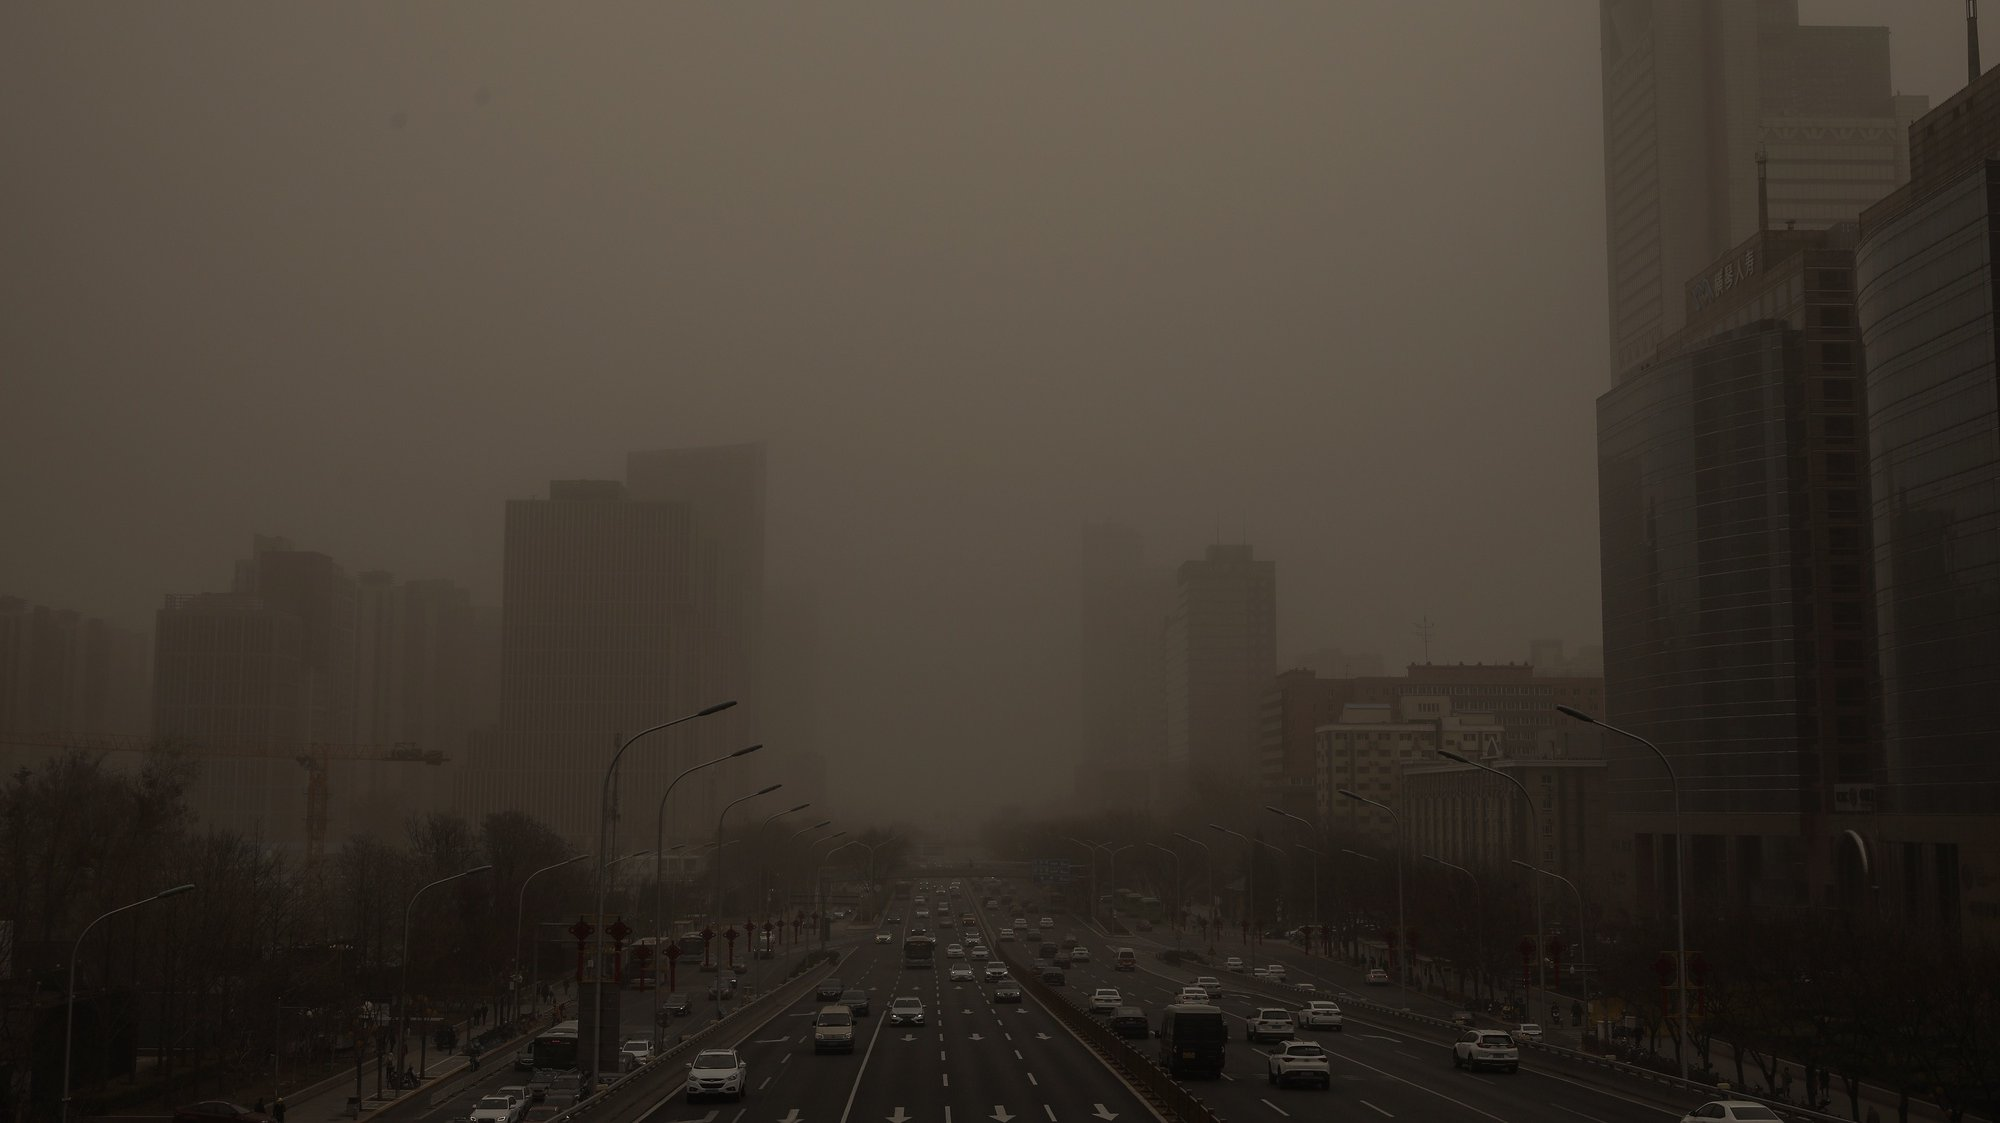 epa09075484 A view shows the skyline affected by a sandstorm, in Beijing, China, 15 March 2021. According to the National Meteorological Center, floating sand and dust are expected to sweep of China's Xinjiang, Inner Mongolia, Heilongjiang, Jilin, Liaoning, Gansu, Ningxia, Shaanxi, Shanxi, Hebei, Beijing and Tianjin.  EPA/WU HONG